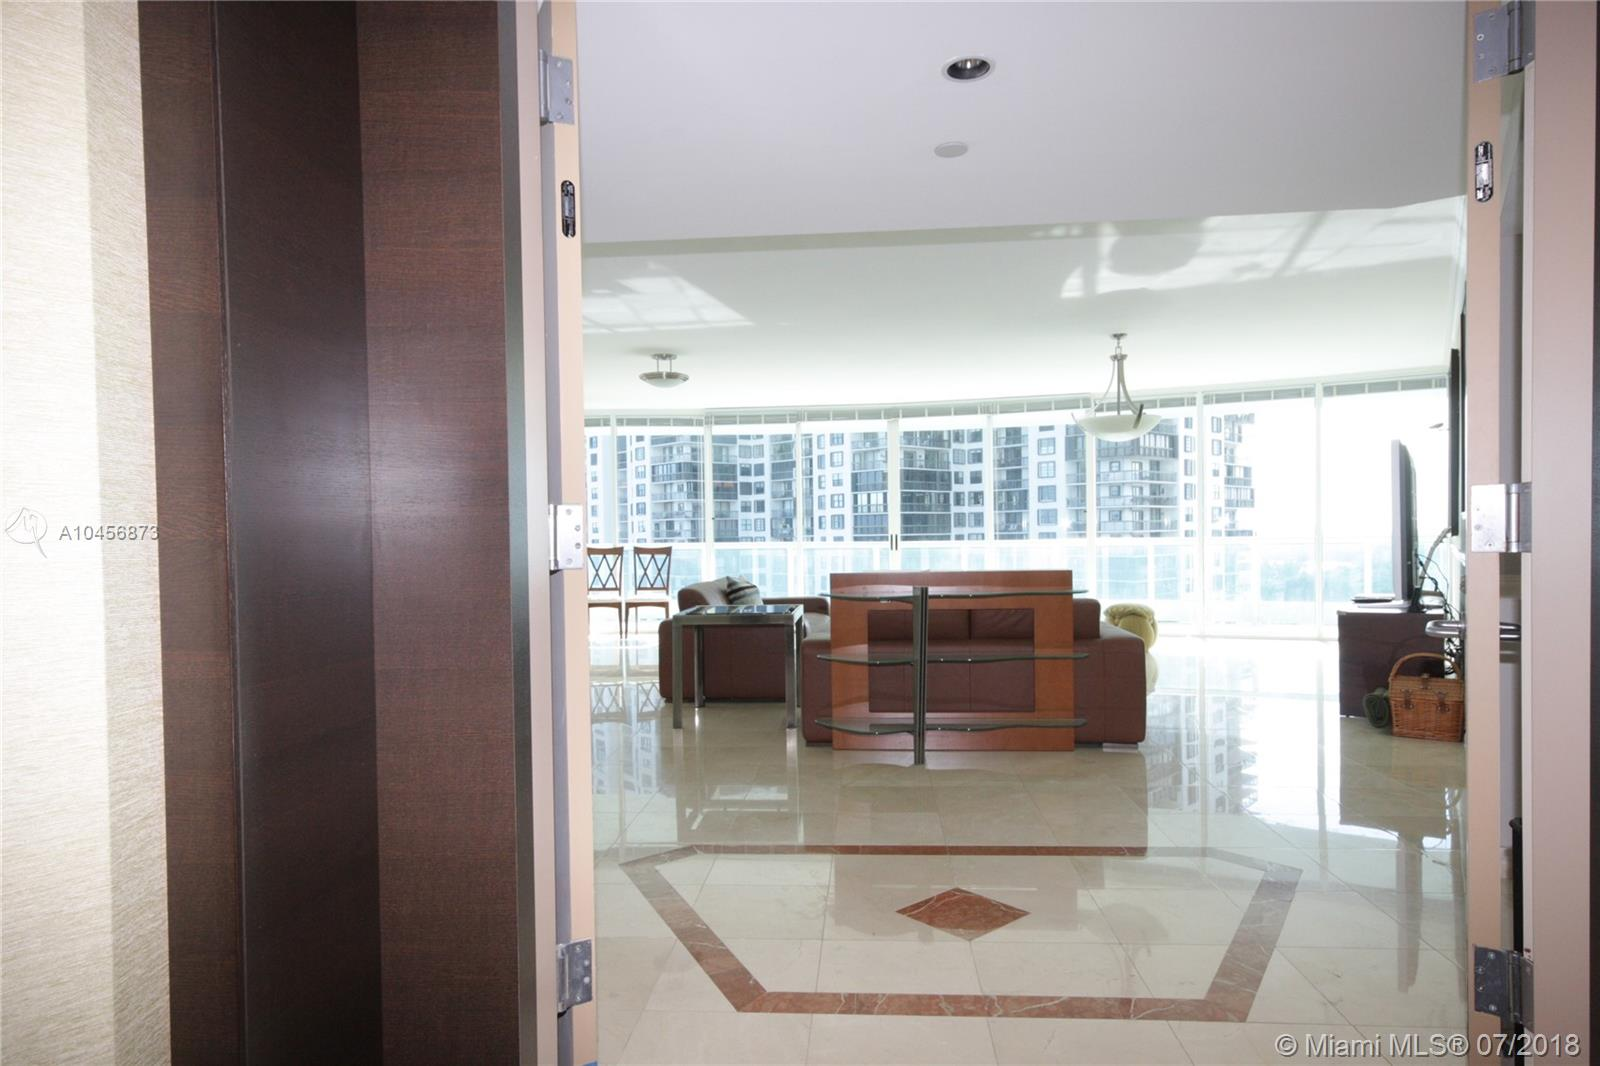 2127 Brickell Avenue, Miami, FL 33129, Bristol Tower Condominium #1702, Brickell, Miami A10456873 image #4